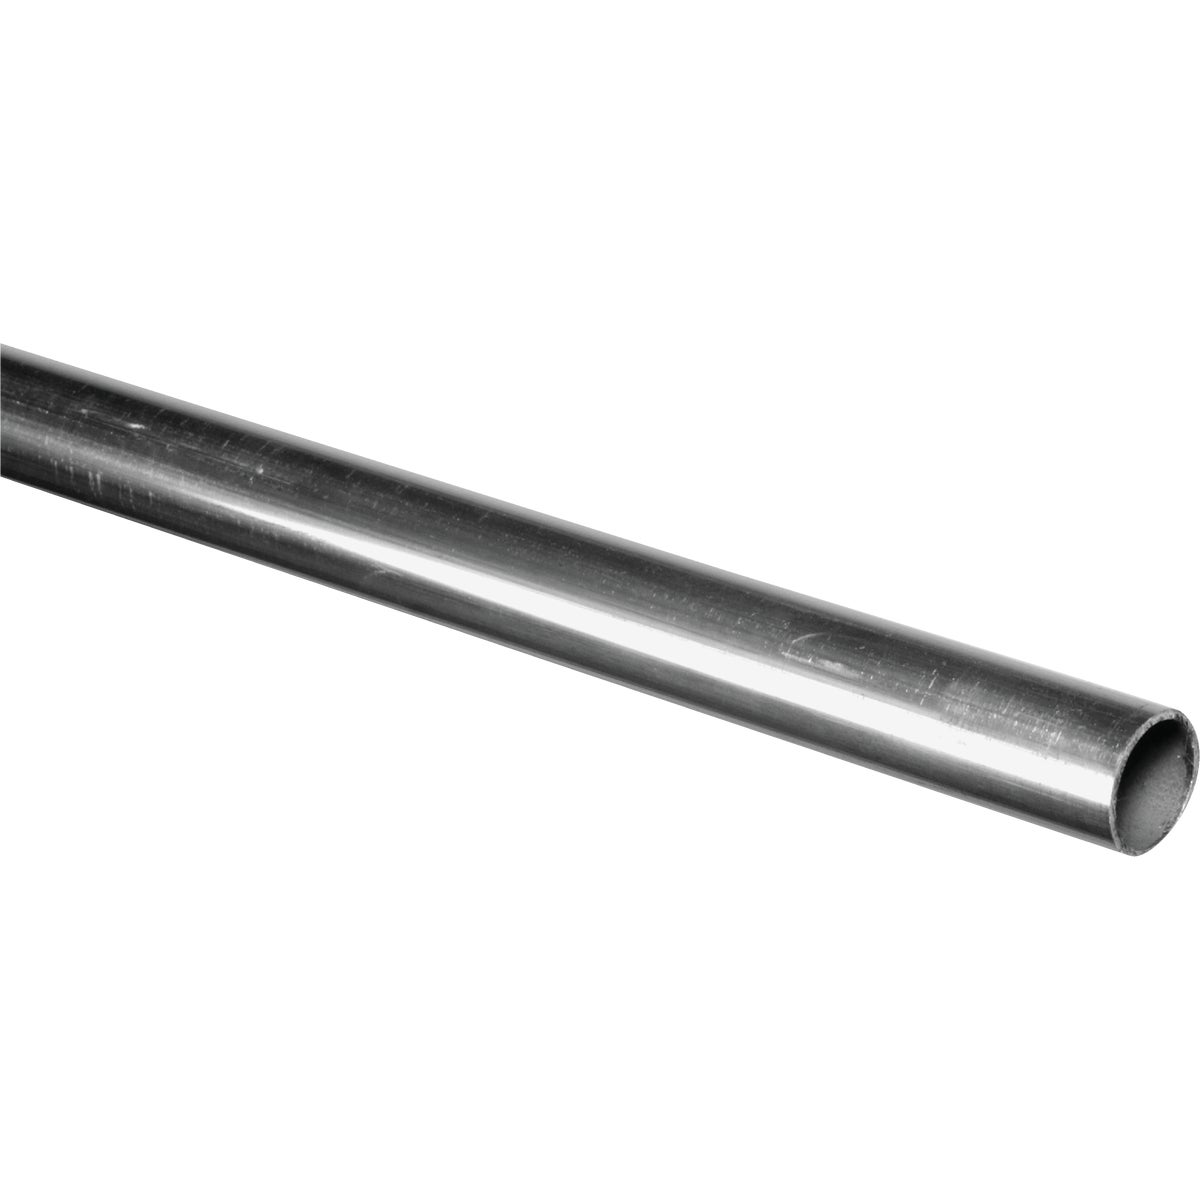 7/8X1/16X96 MILL TUBE - N258467 by National Mfg Co